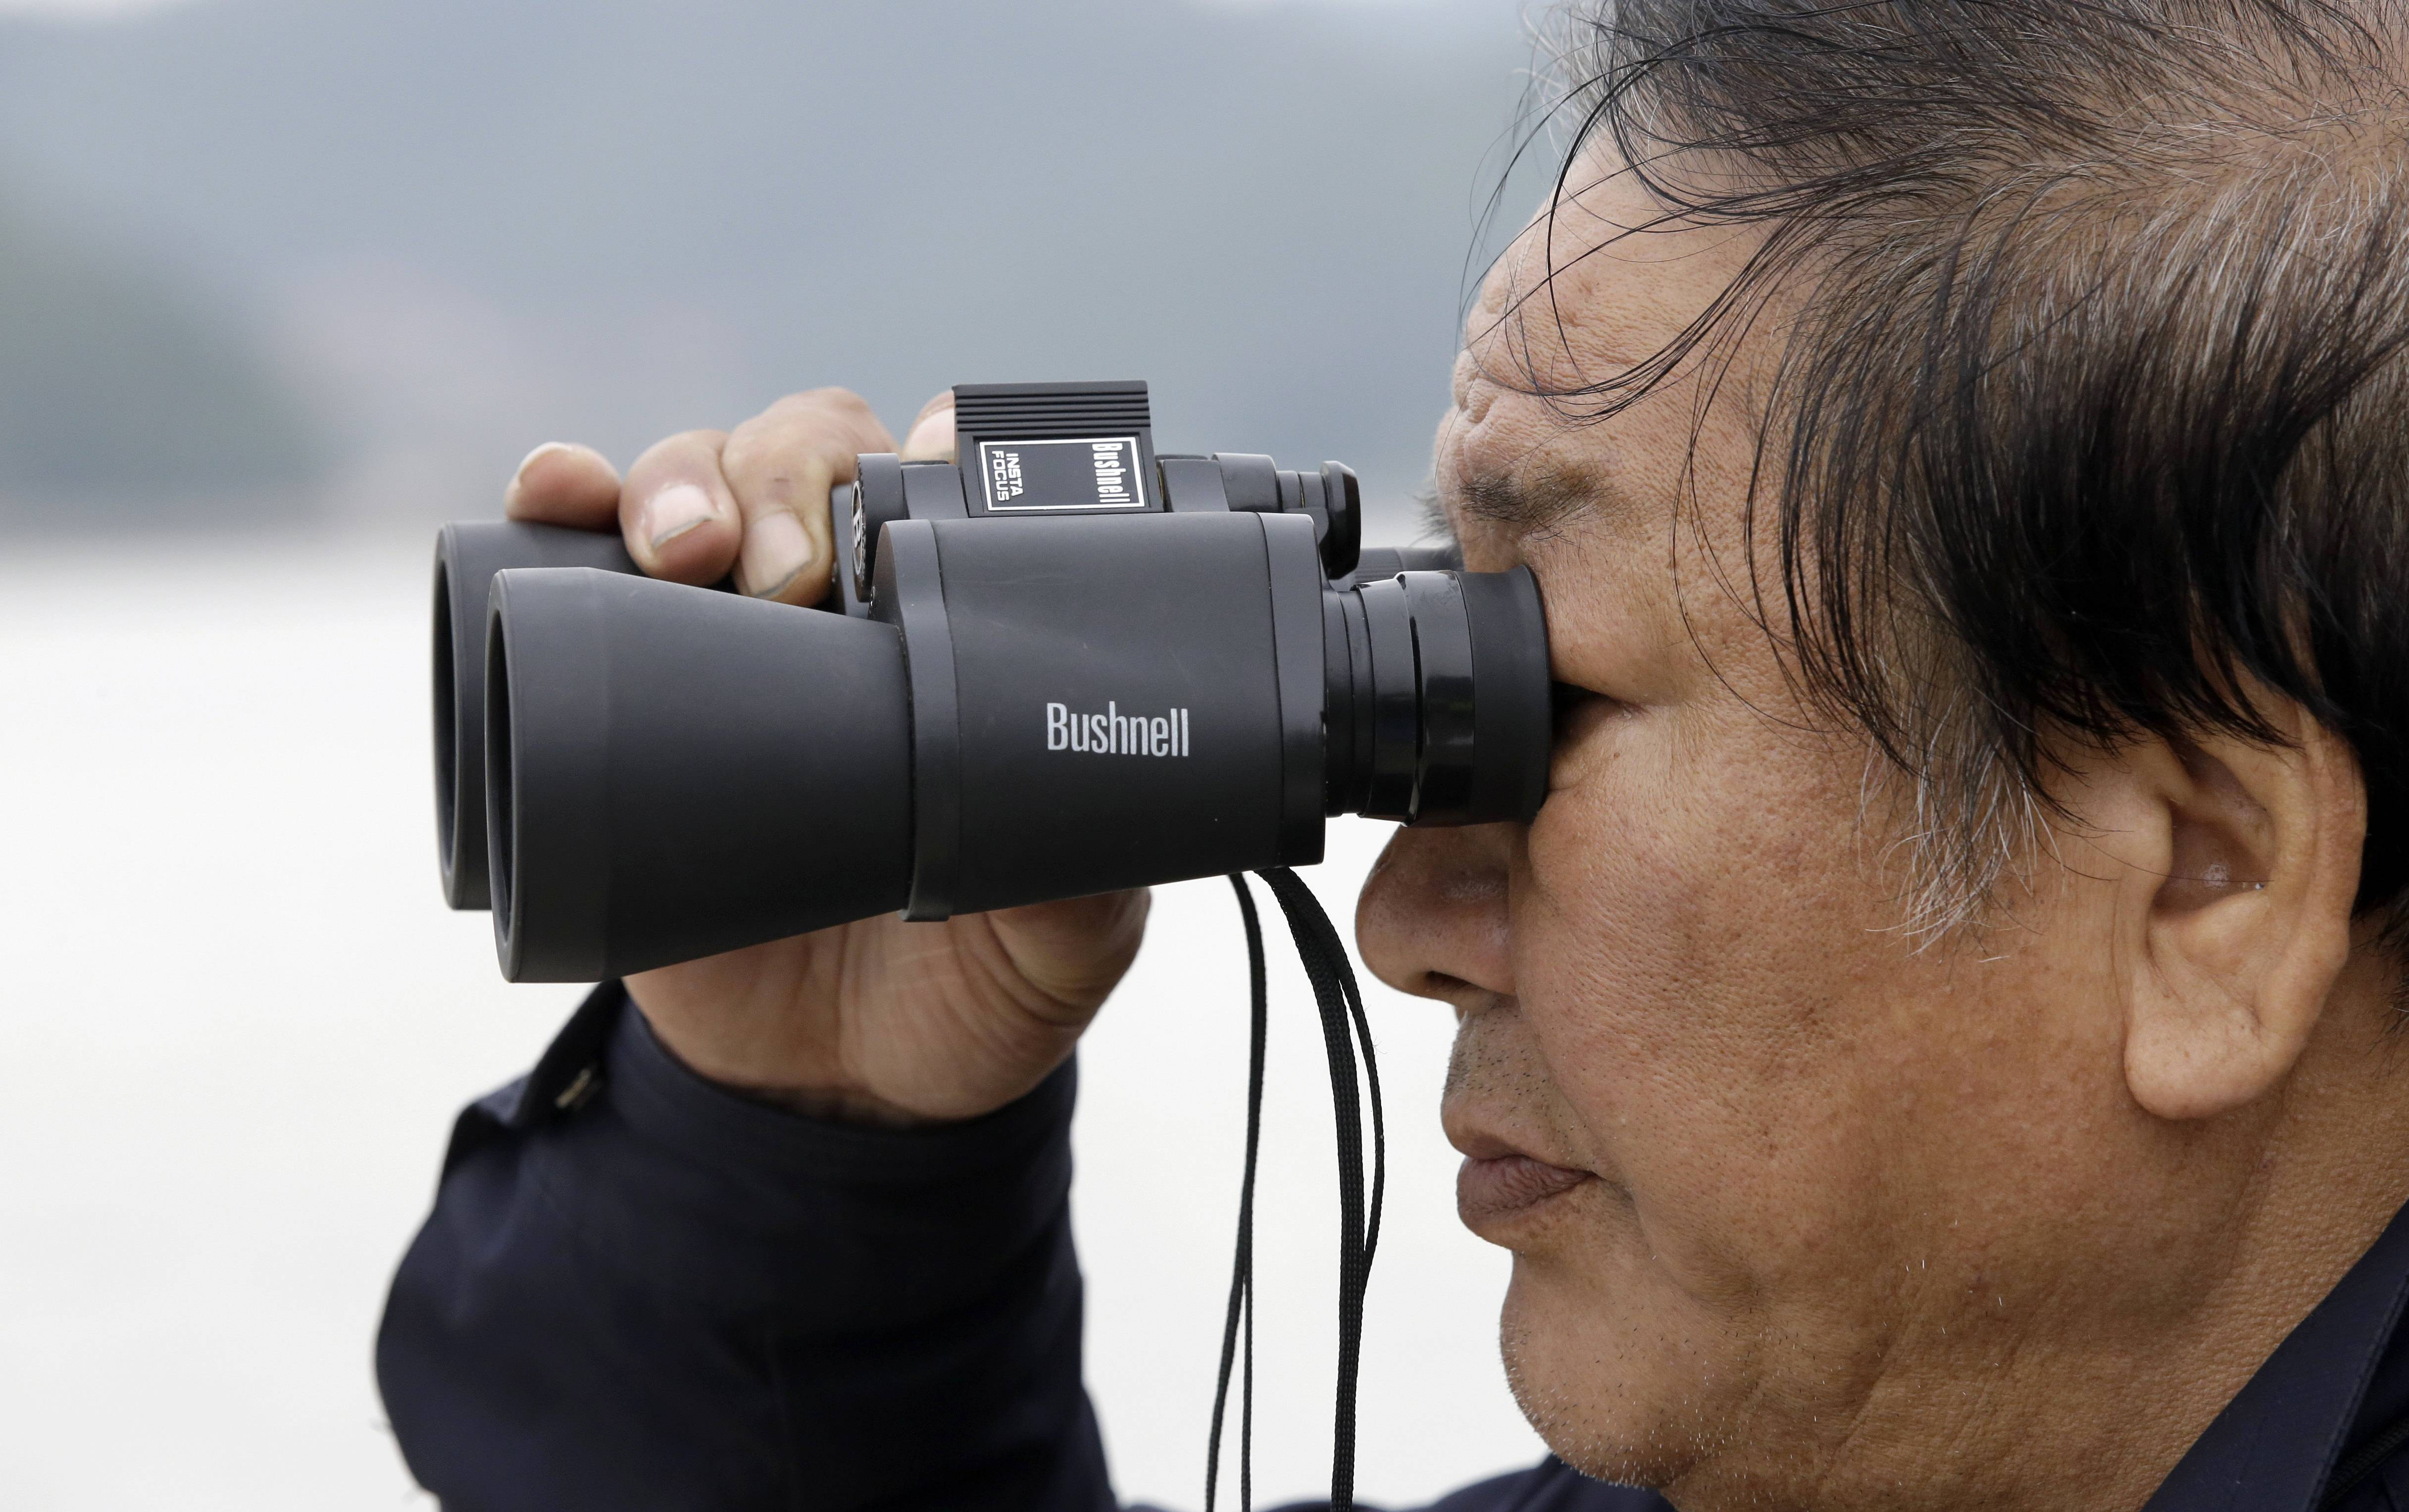 A South Korean man uses binoculars as he waits for his granddaughter who aboard the sunken ferry Sewol in the water off the southern coast at a port in Jindo, south of Seoul, South Korea, Saturday, April 19. The captain of the sunken South Korean ferry was arrested Saturday on suspicion of negligence and abandoning people in need, as investigators looked into whether his evacuation order came too late to save lives. Two crew members were also arrested, a prosecutor said.